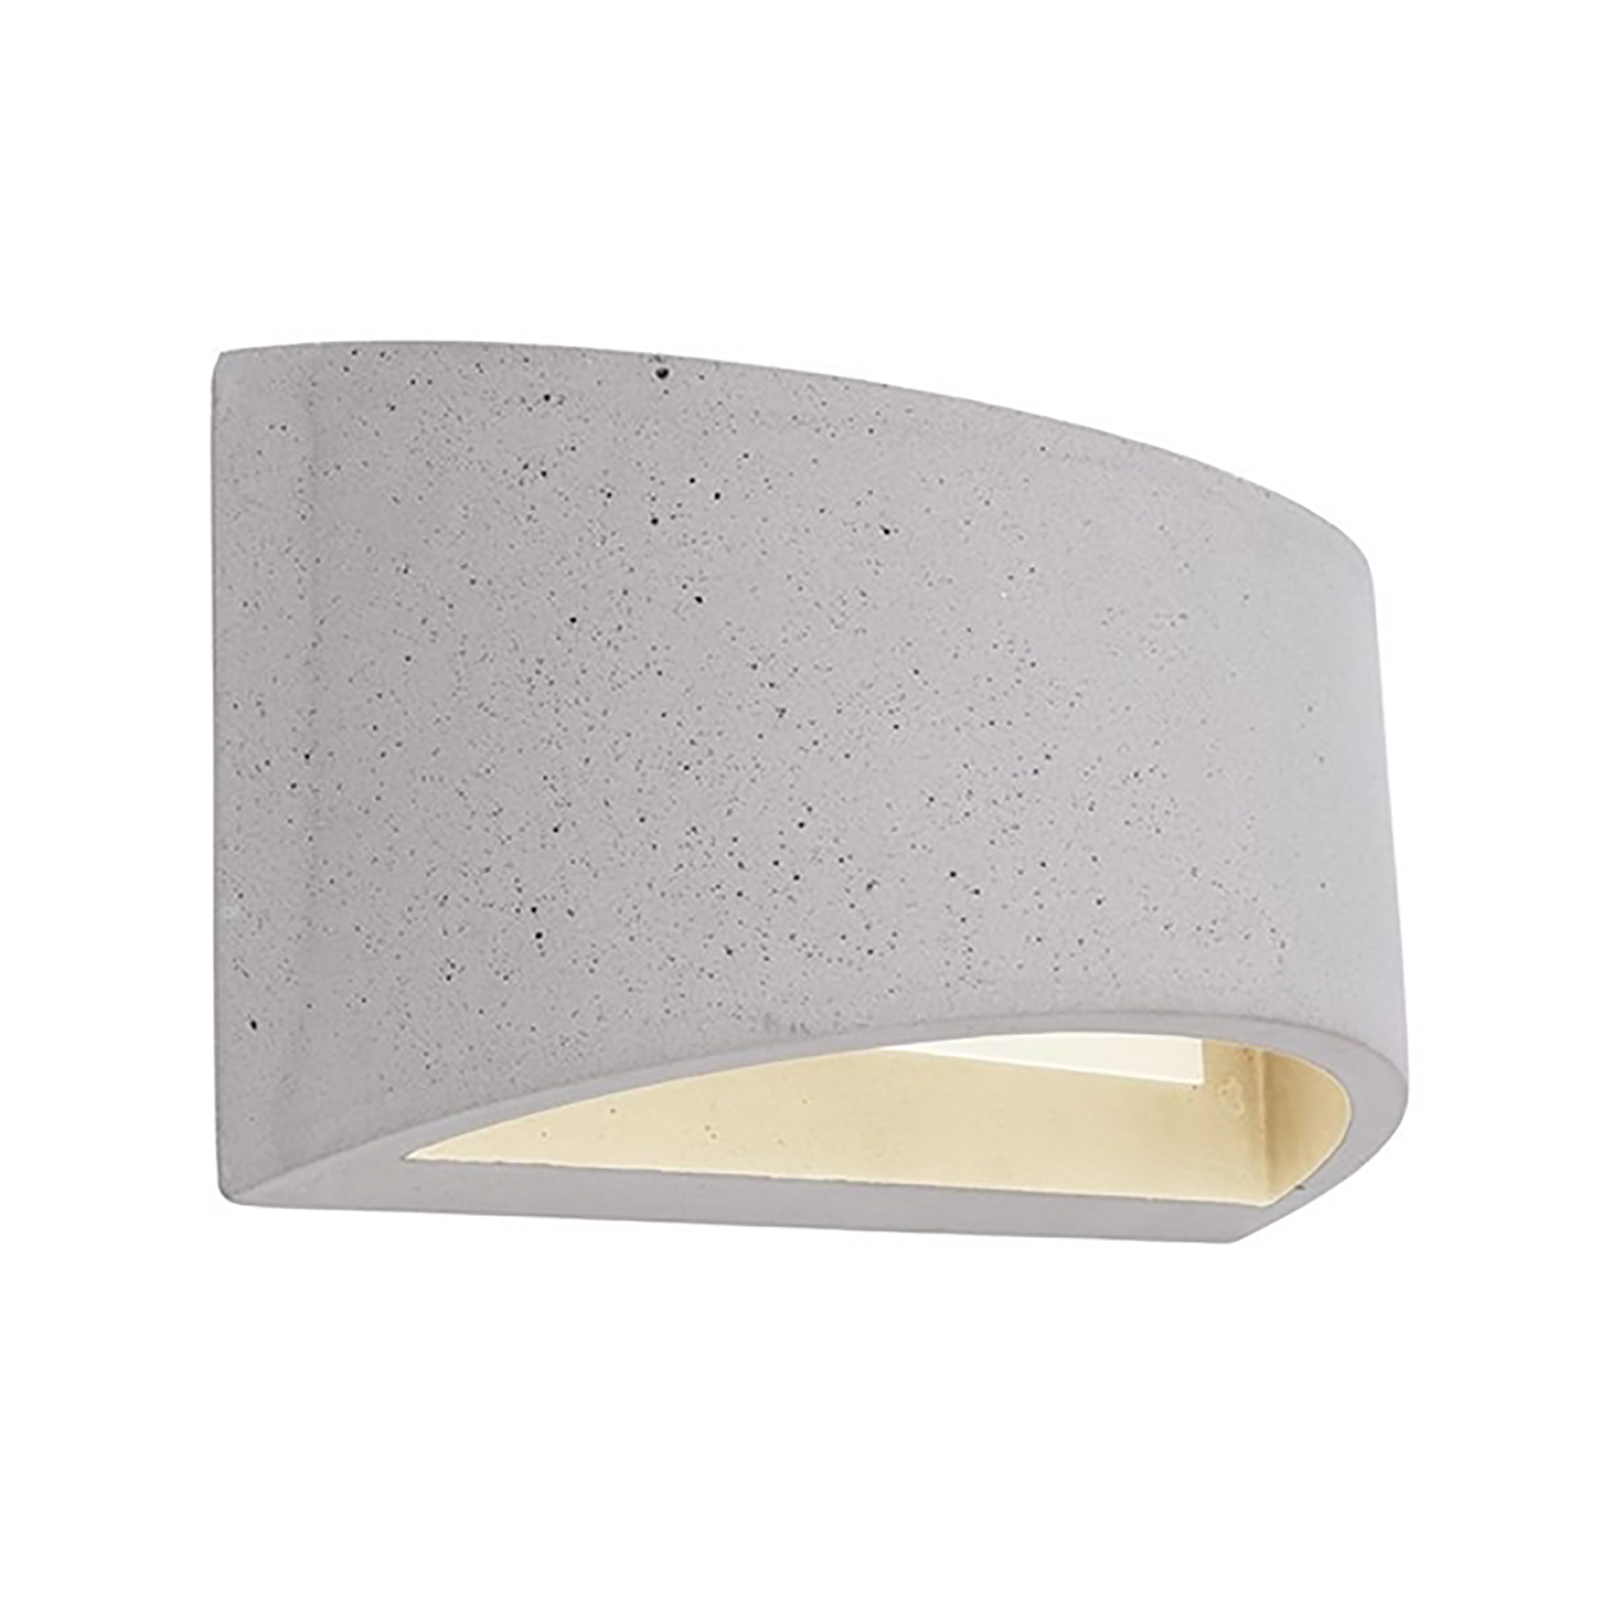 Applique LED stone cement wall-lamp double vertical light G9 220V IP20